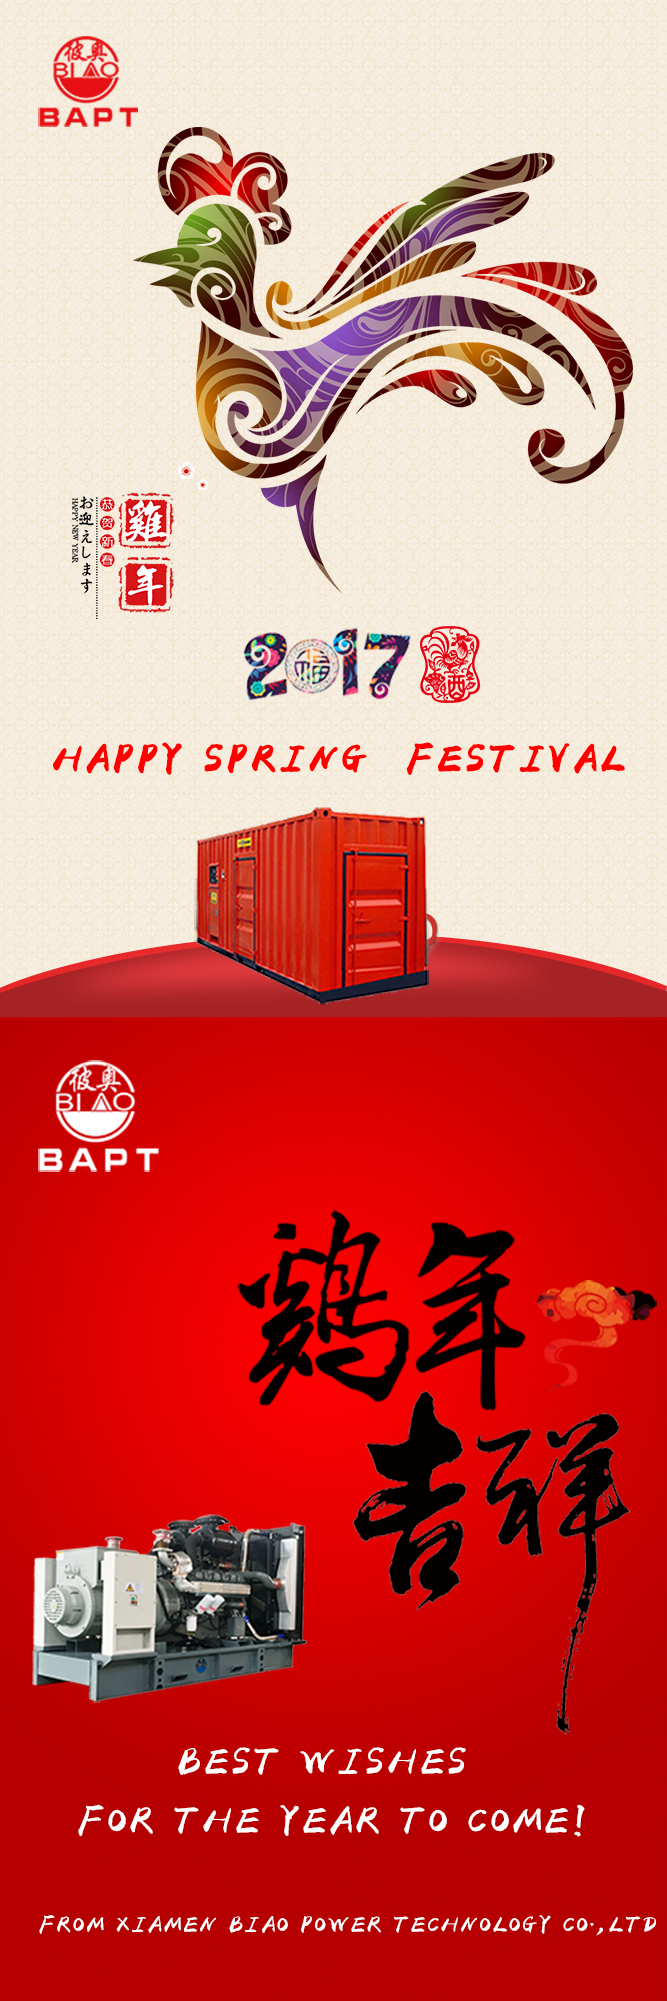 Happy Spring Festival Biao Genset